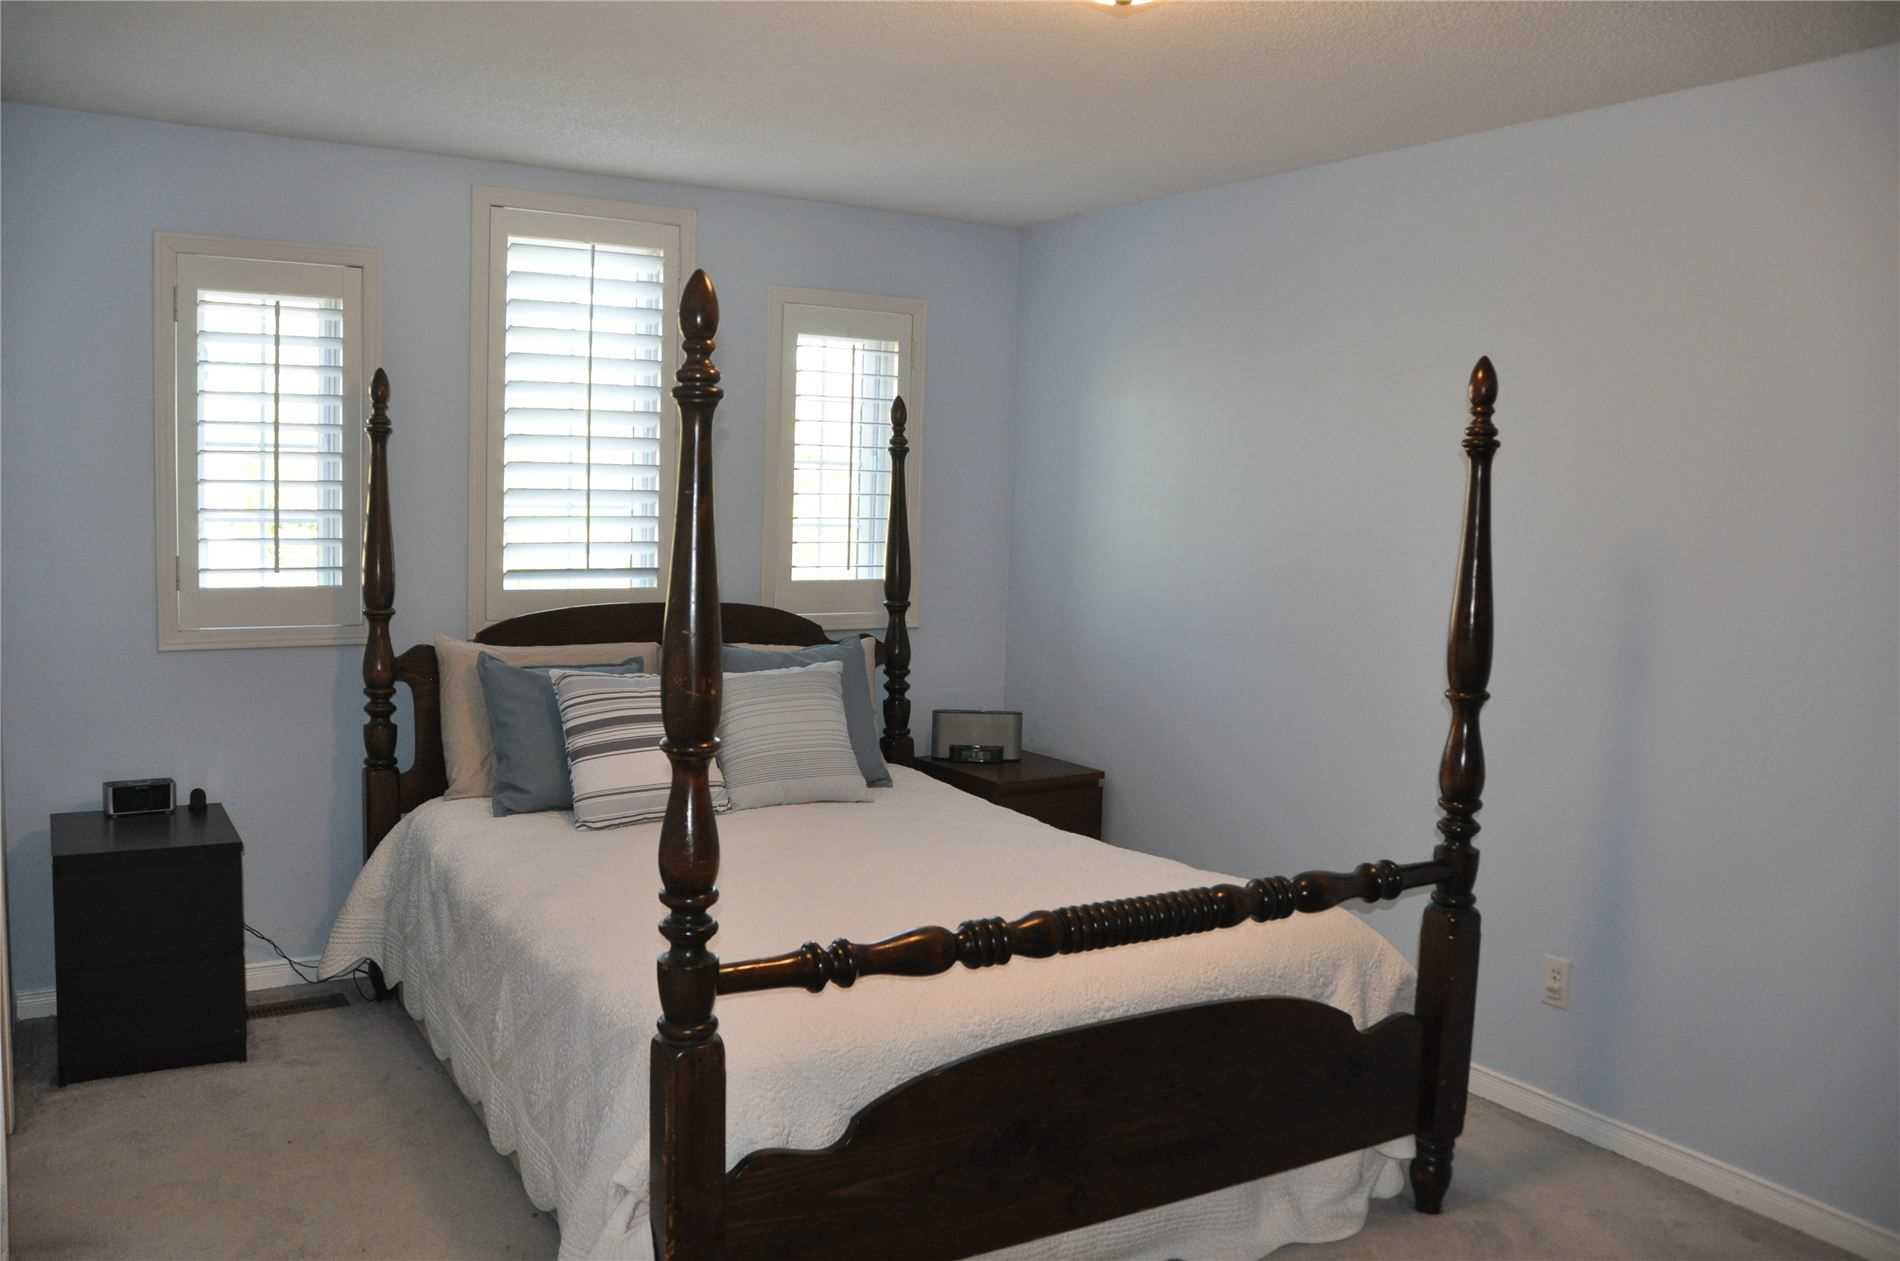 Image 11 of 12 showing inside of 3 Bedroom Condo Townhouse 2-Storey for Sale at 22 Macintyre Lane Unit# 11, Ajax L1T3X3